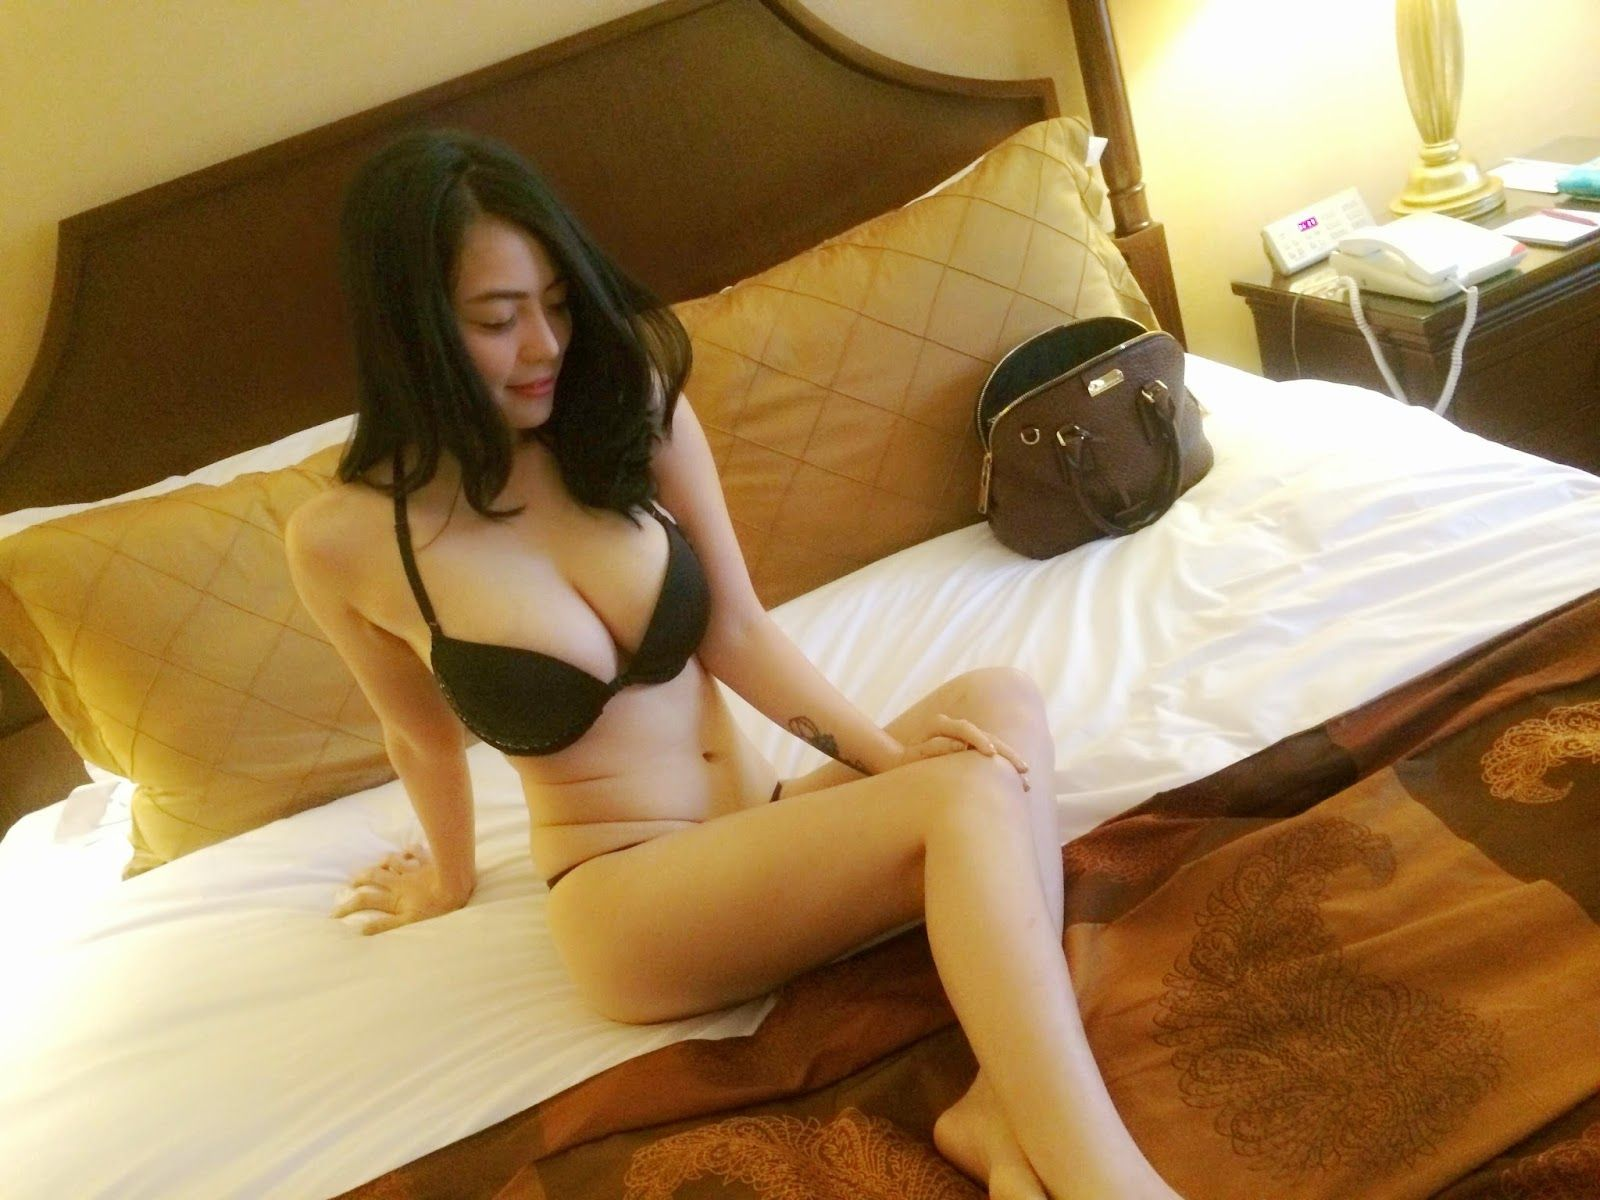 Indonesia Porn Sexy Minimalist sexy girl 15 | public gallery - check fake photos | mixing